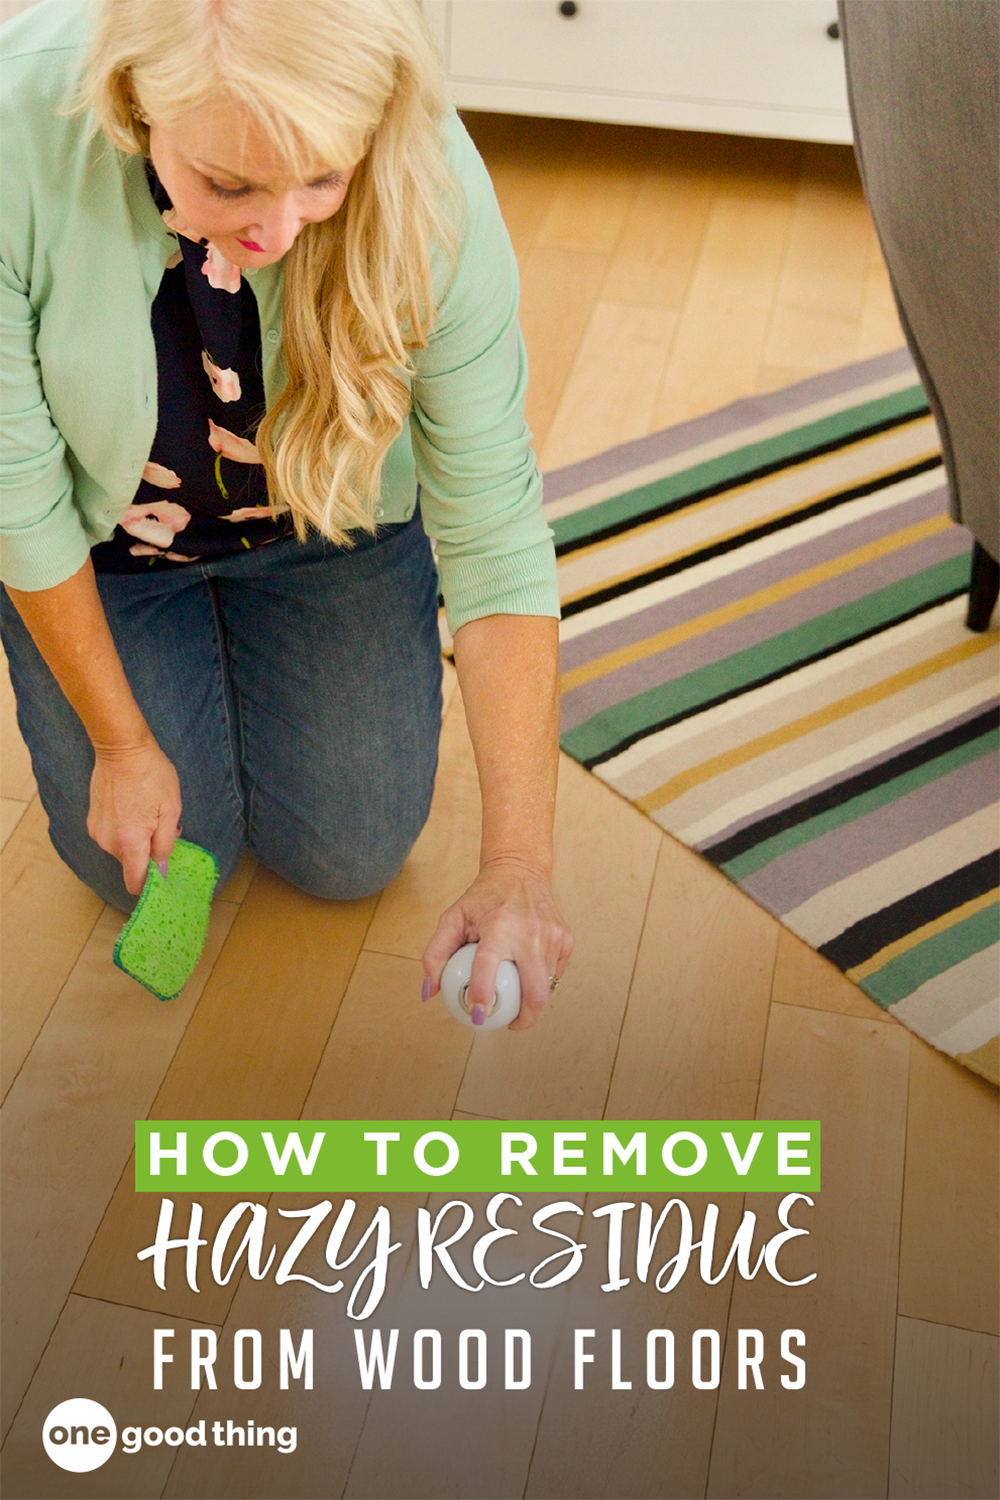 How To Remove Hazy Residue From Hardwood Floors One Good Thing By Jillee In 2020 Clean Hardwood Floors Fun To Be One Flooring